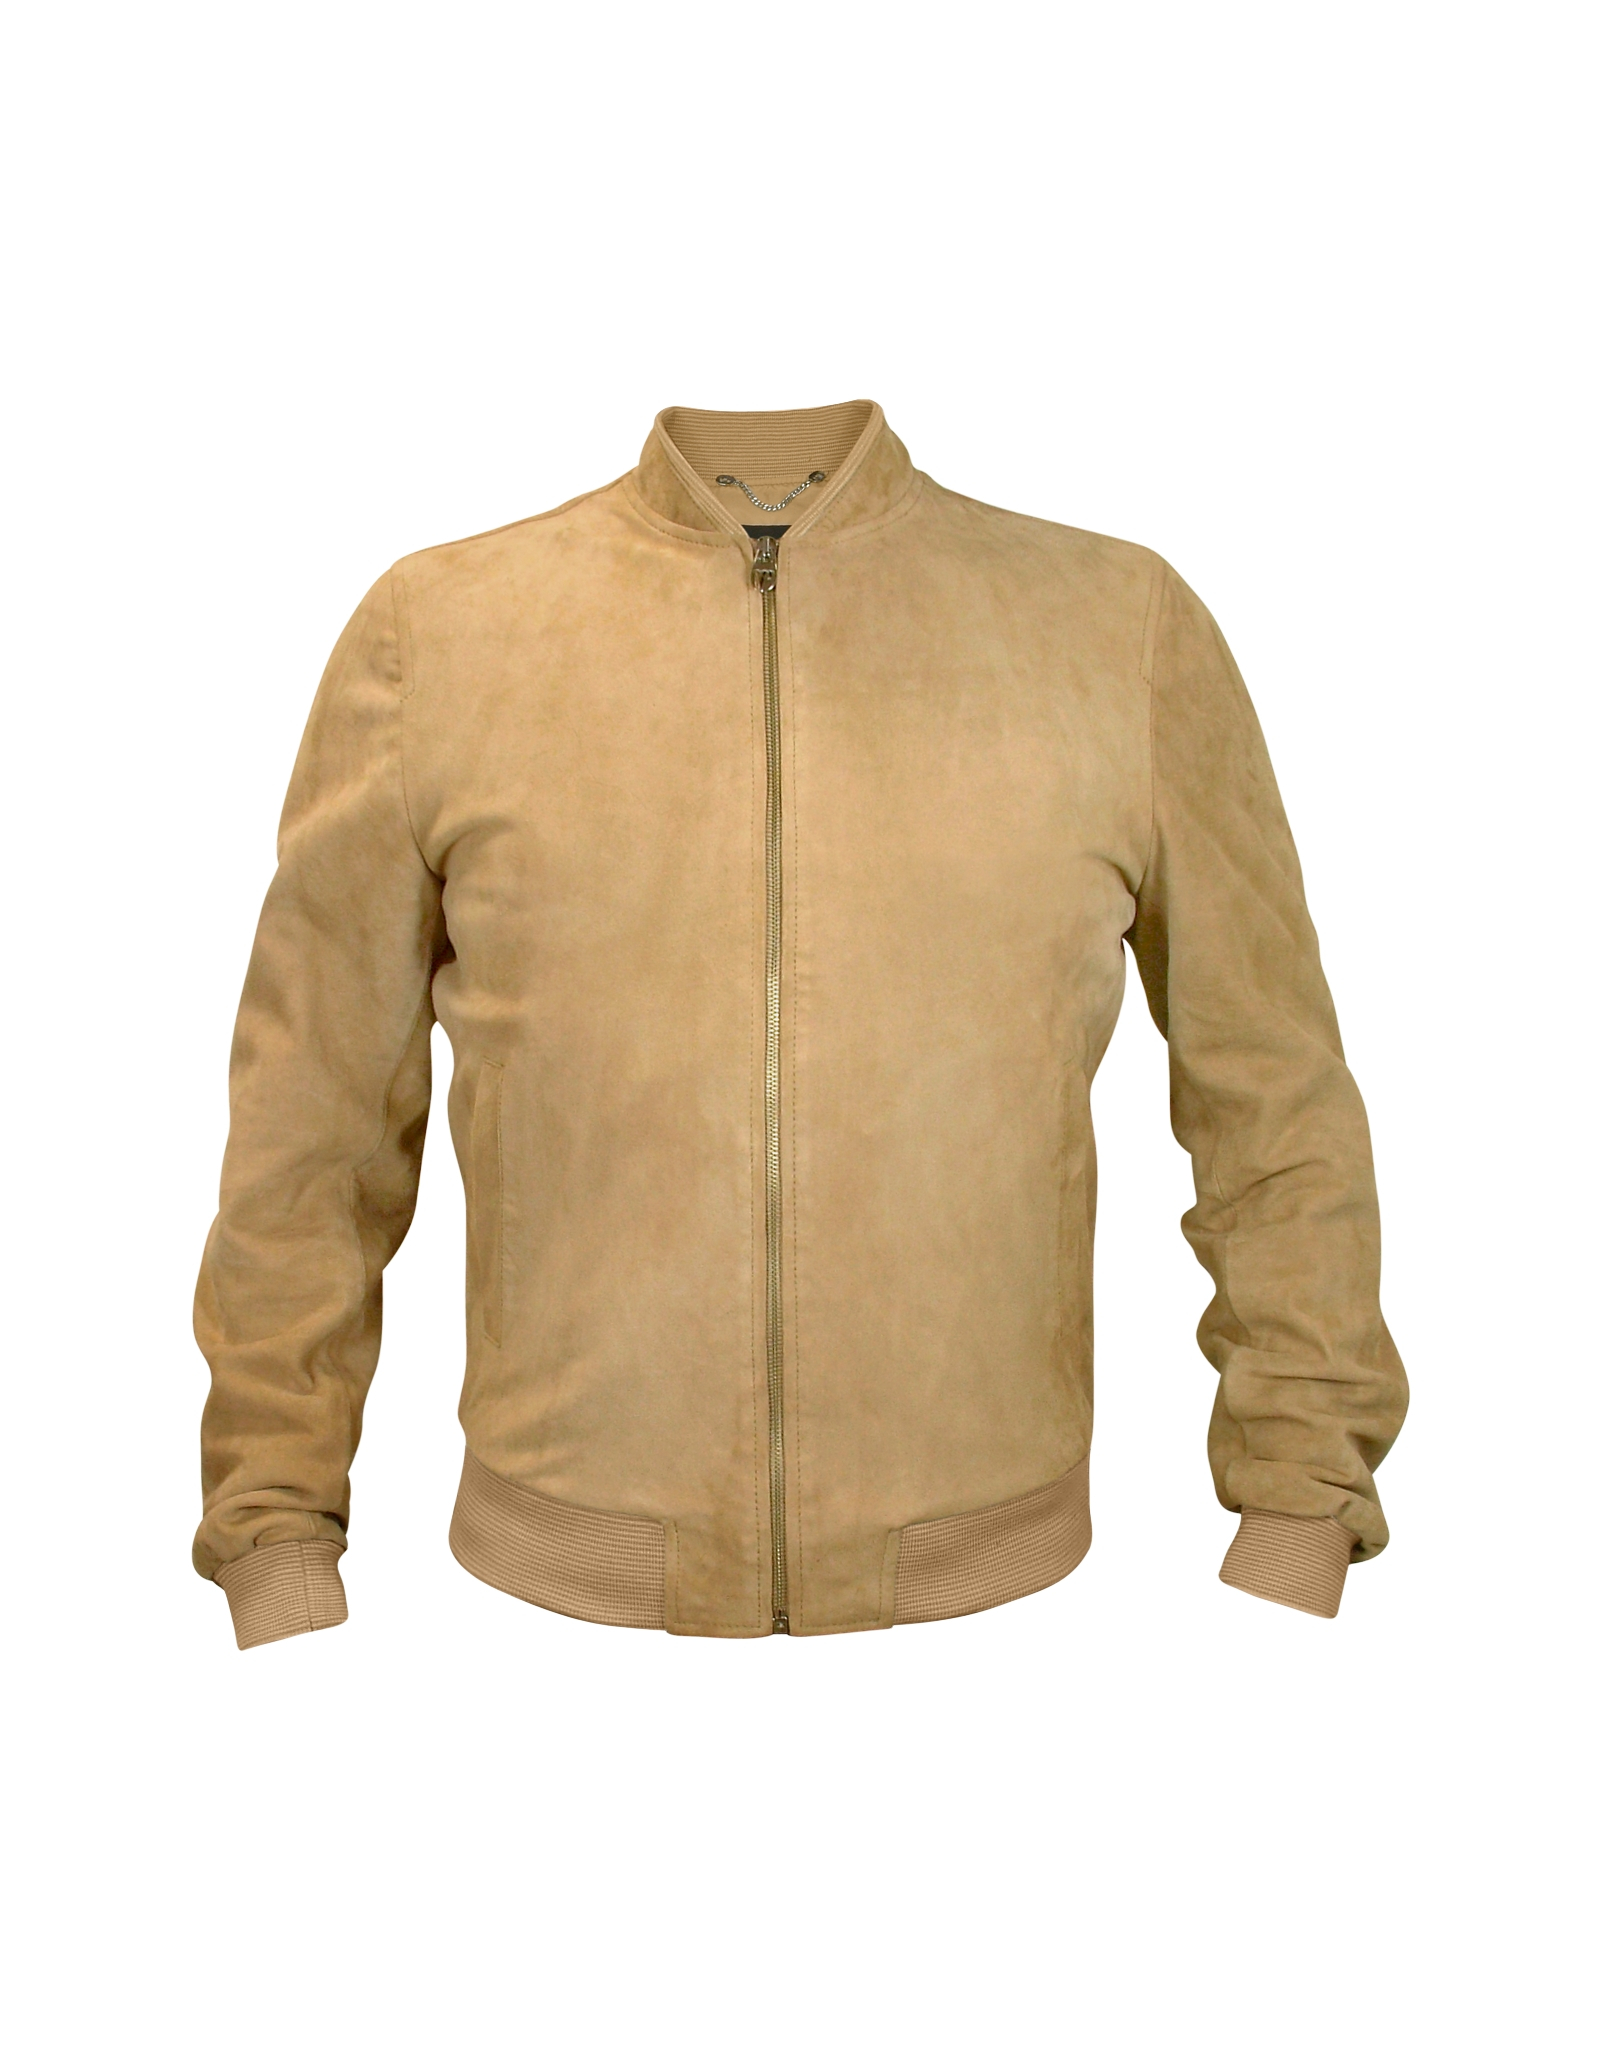 Lyst - Forzieri Men's Light Brown Suede Zip Jacket in Brown for Men